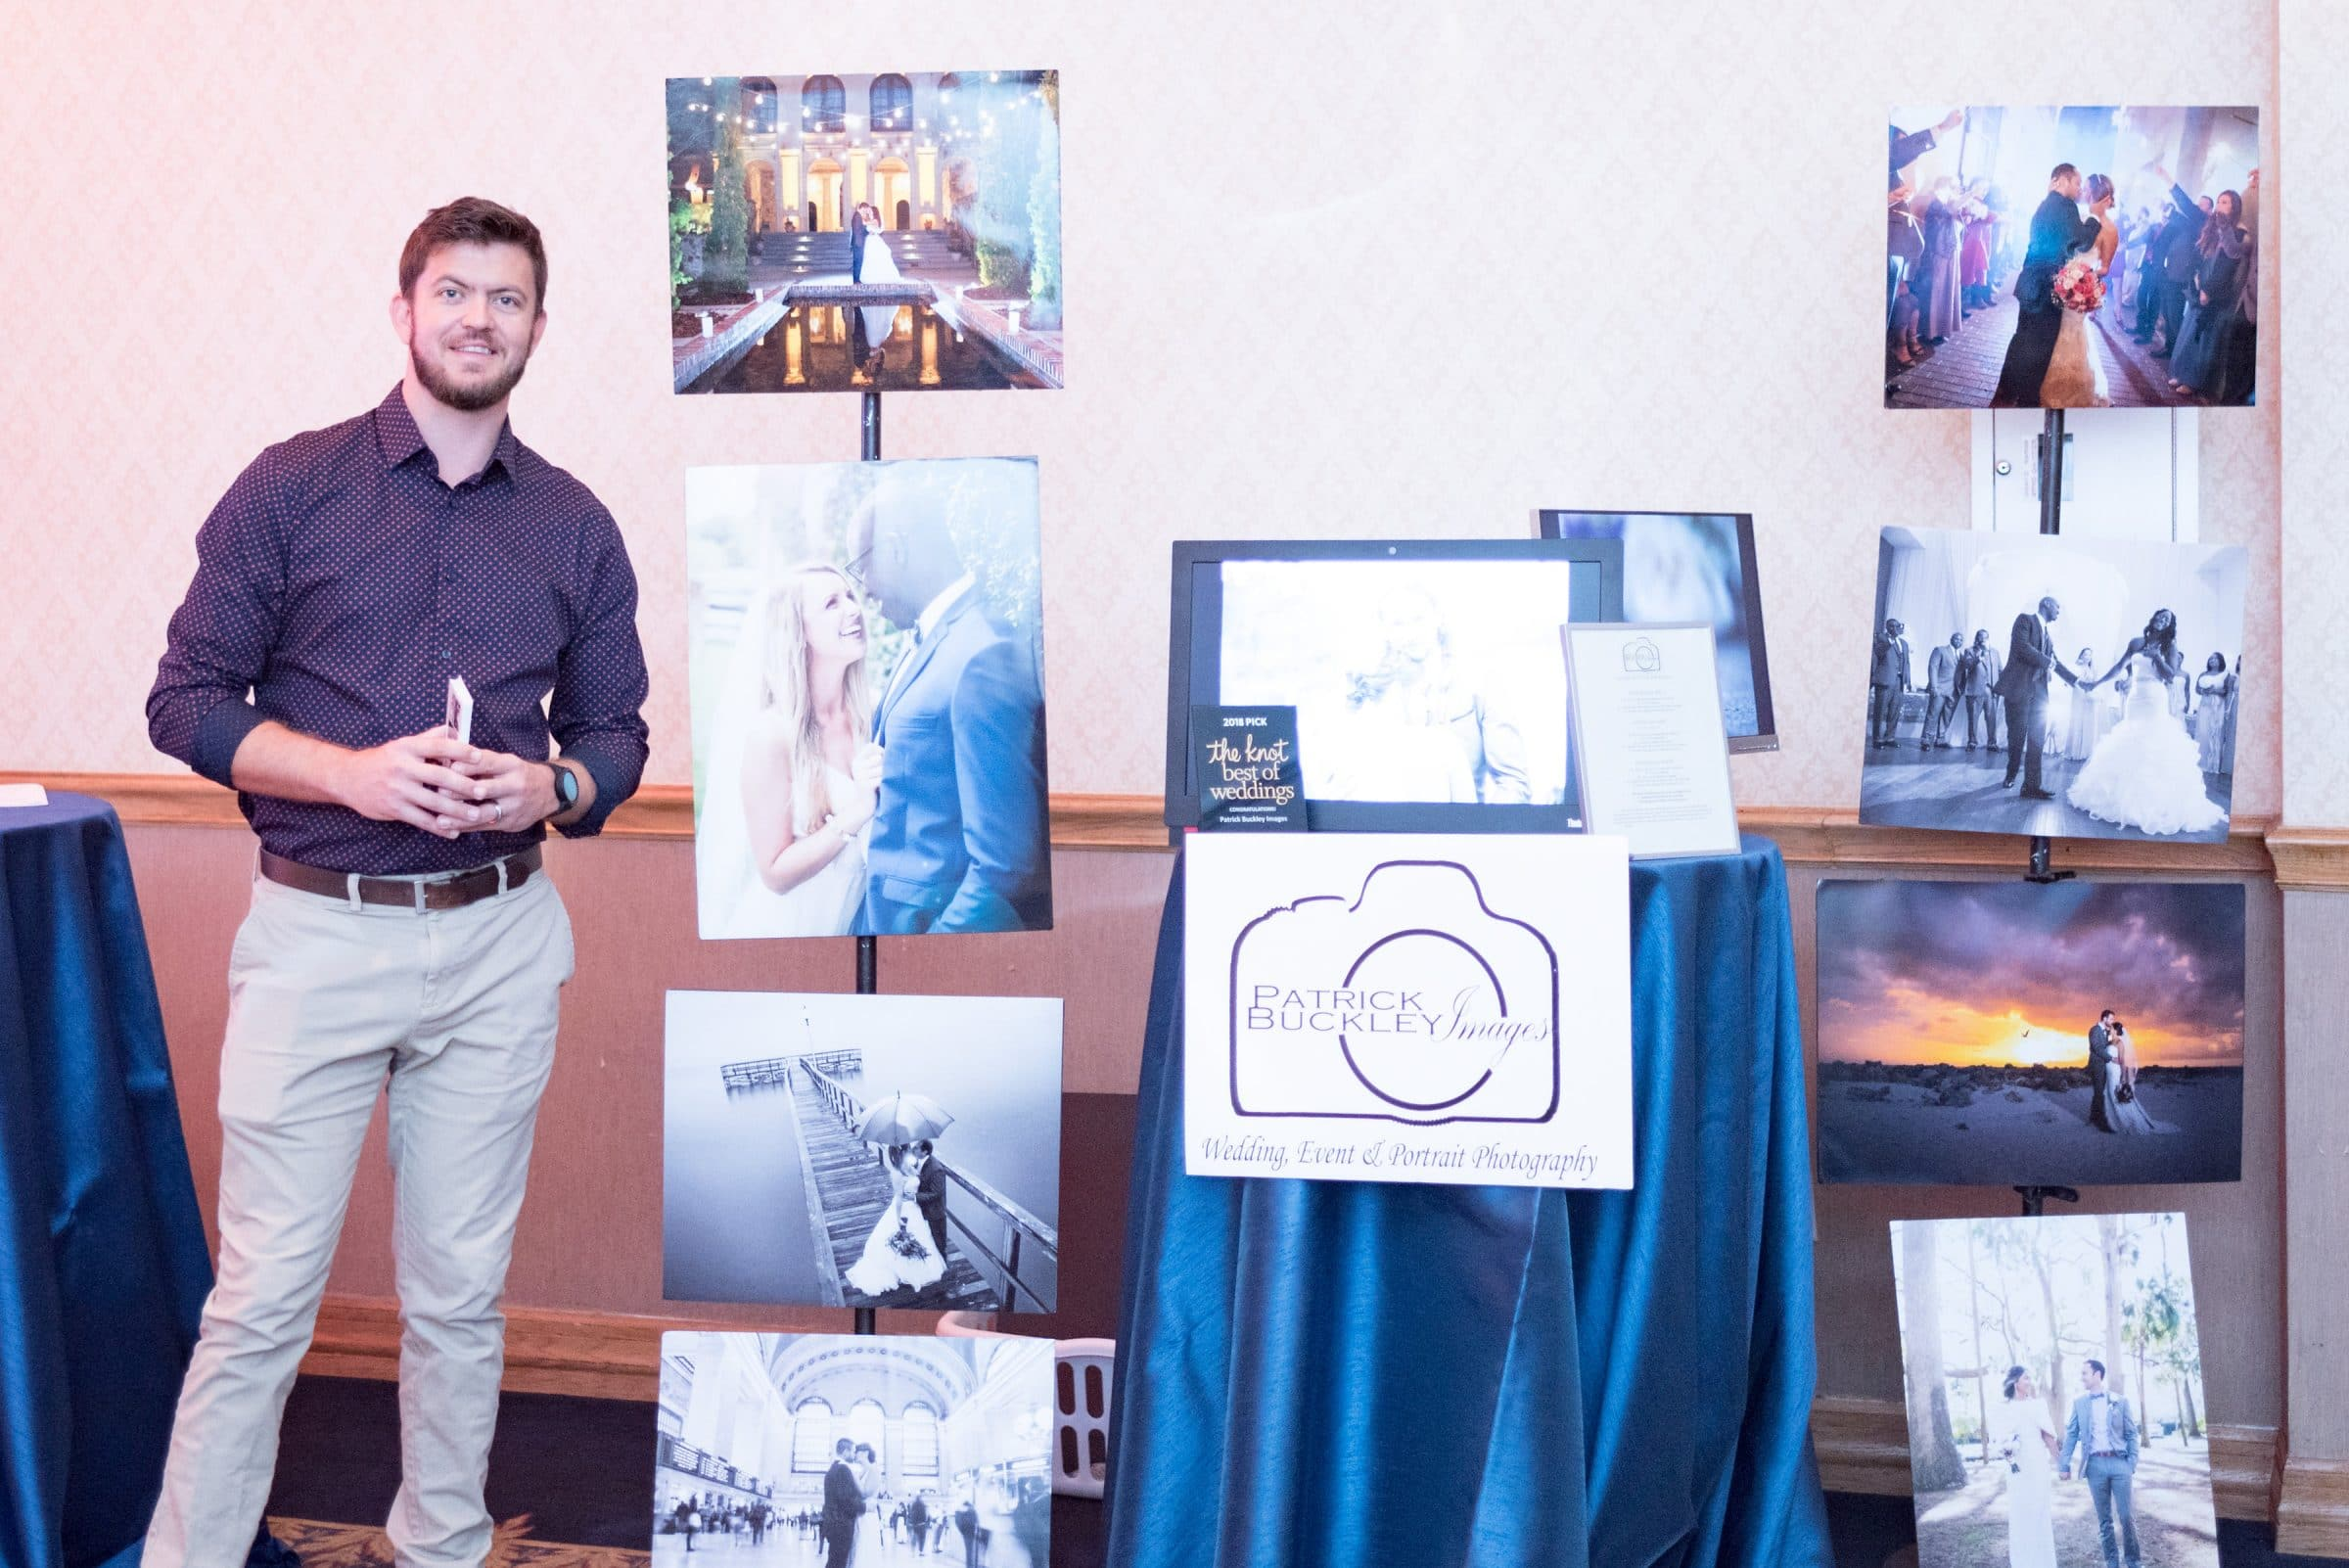 Orlando Wedding Photographer standing next to collection of canvases